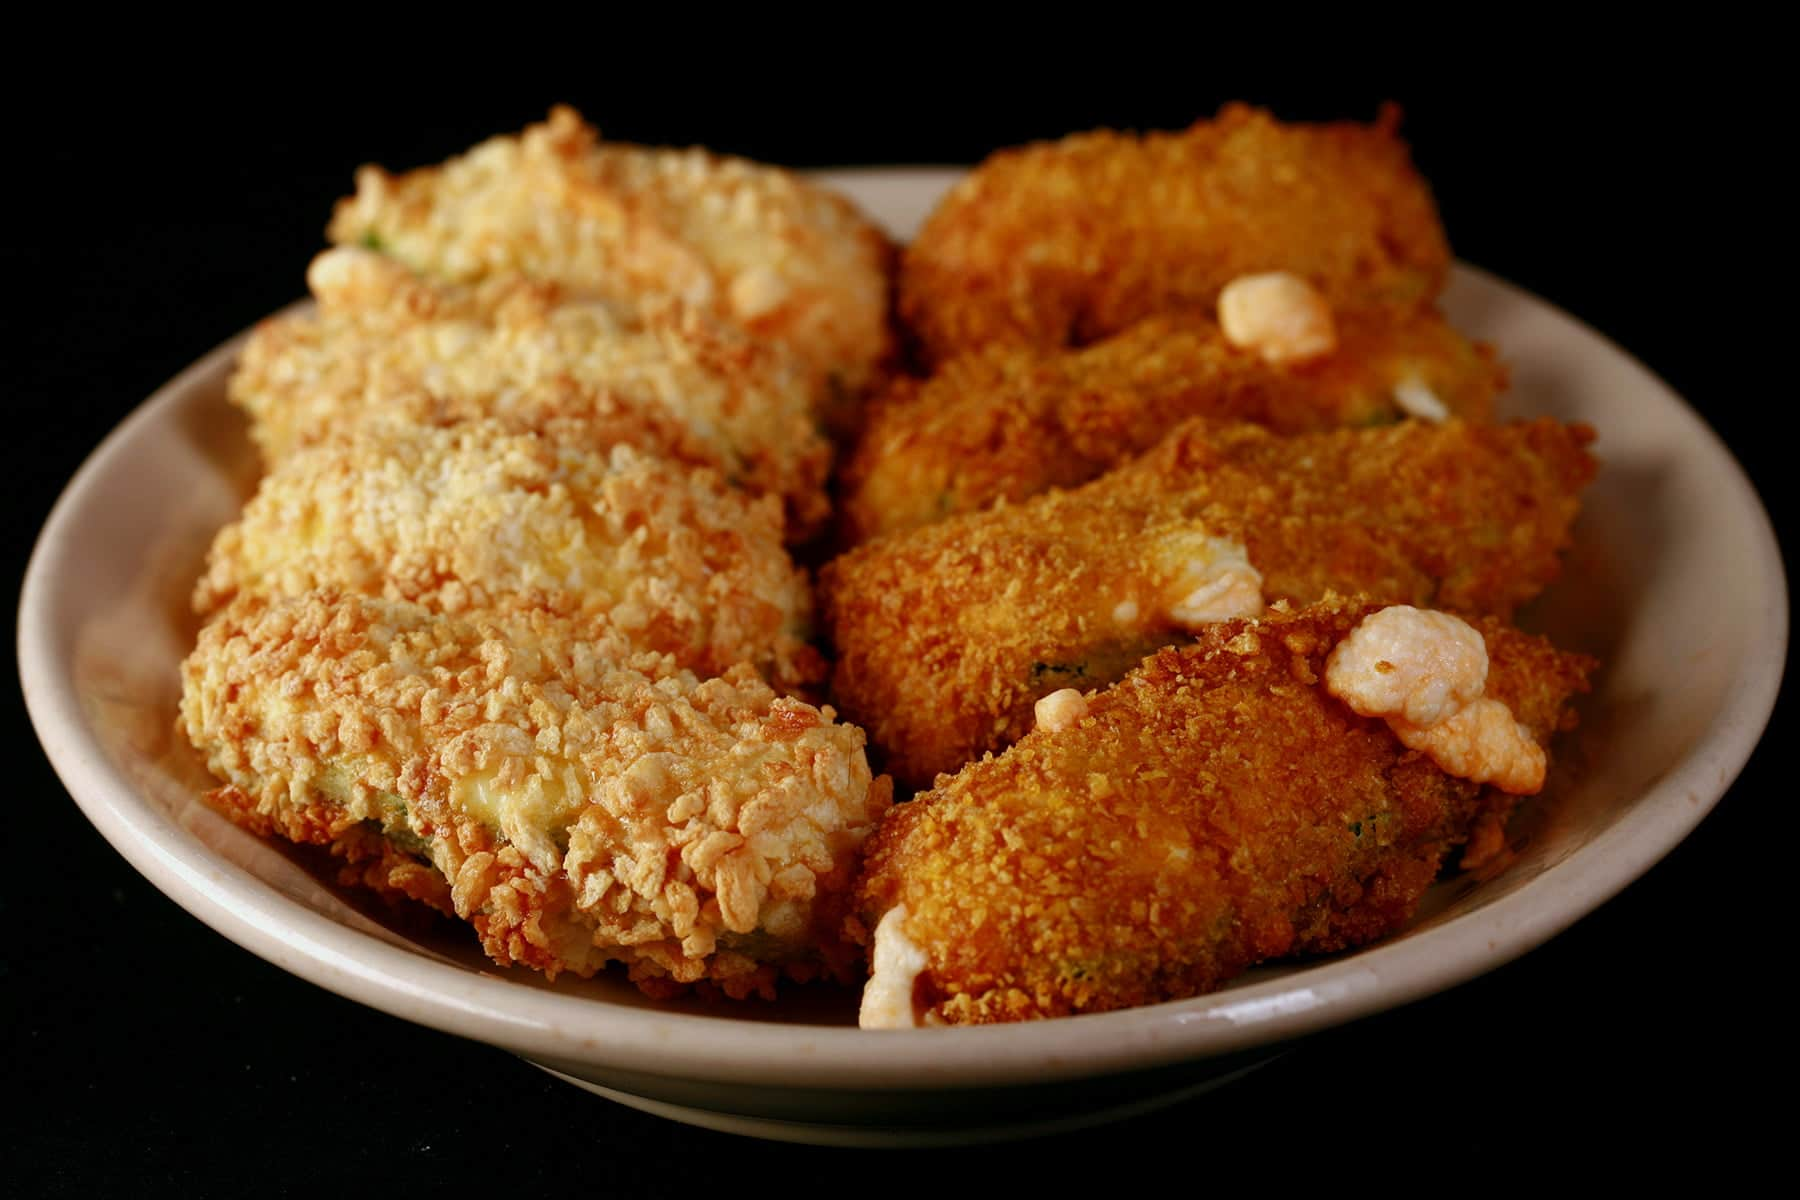 A small ivory colour plate holds two different types of gluten-free jalapeno poppers.